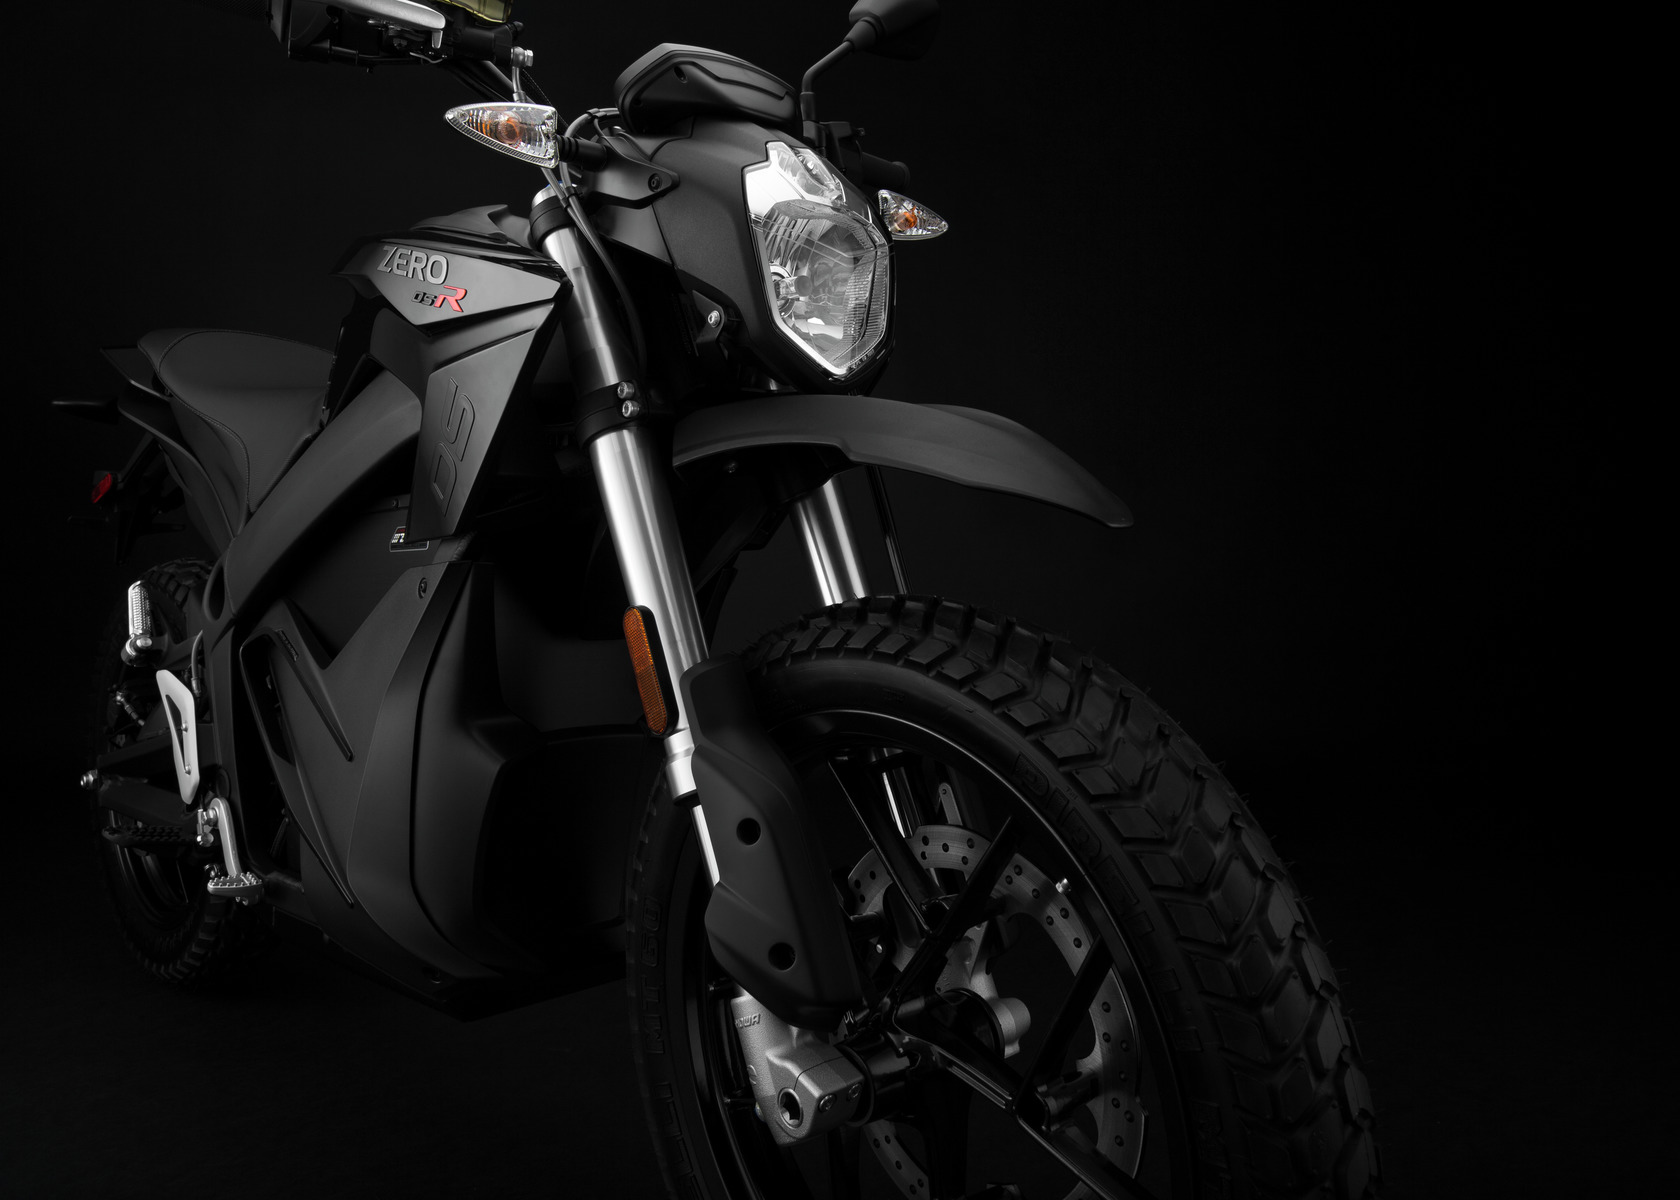 2016 Zero DSR Electric Motorcycle: Front Fork